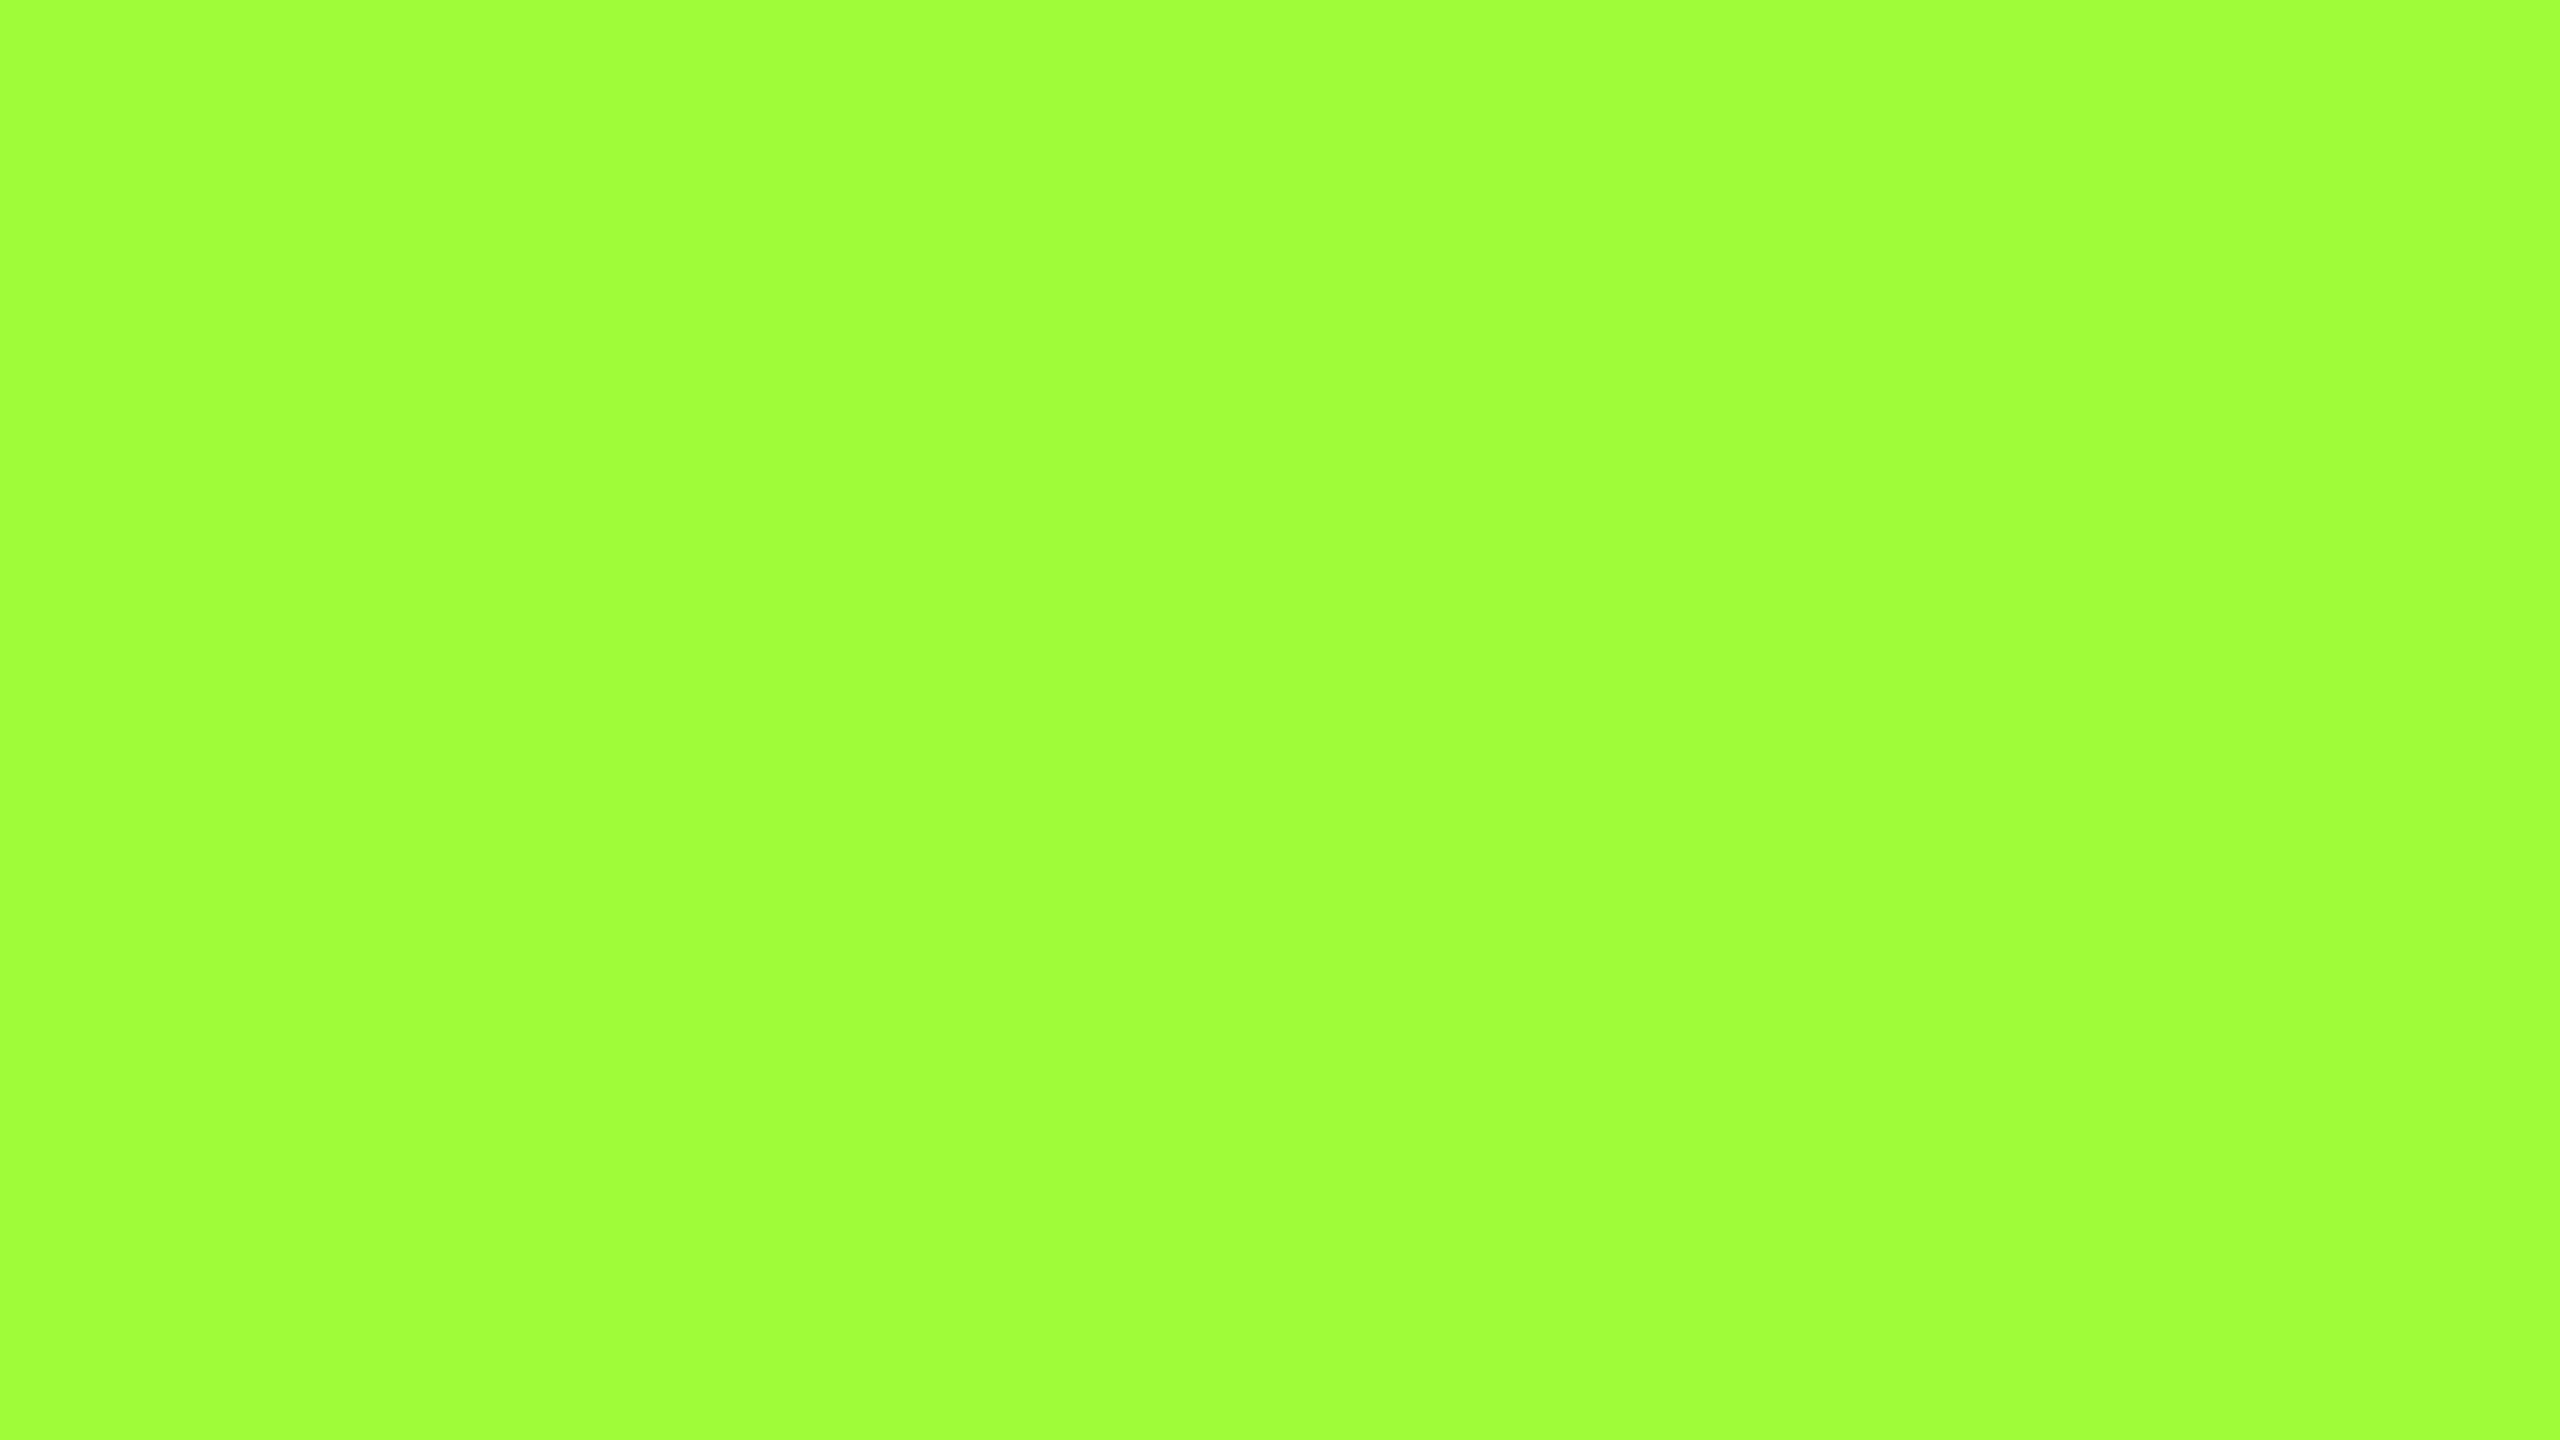 lime color background - photo #5